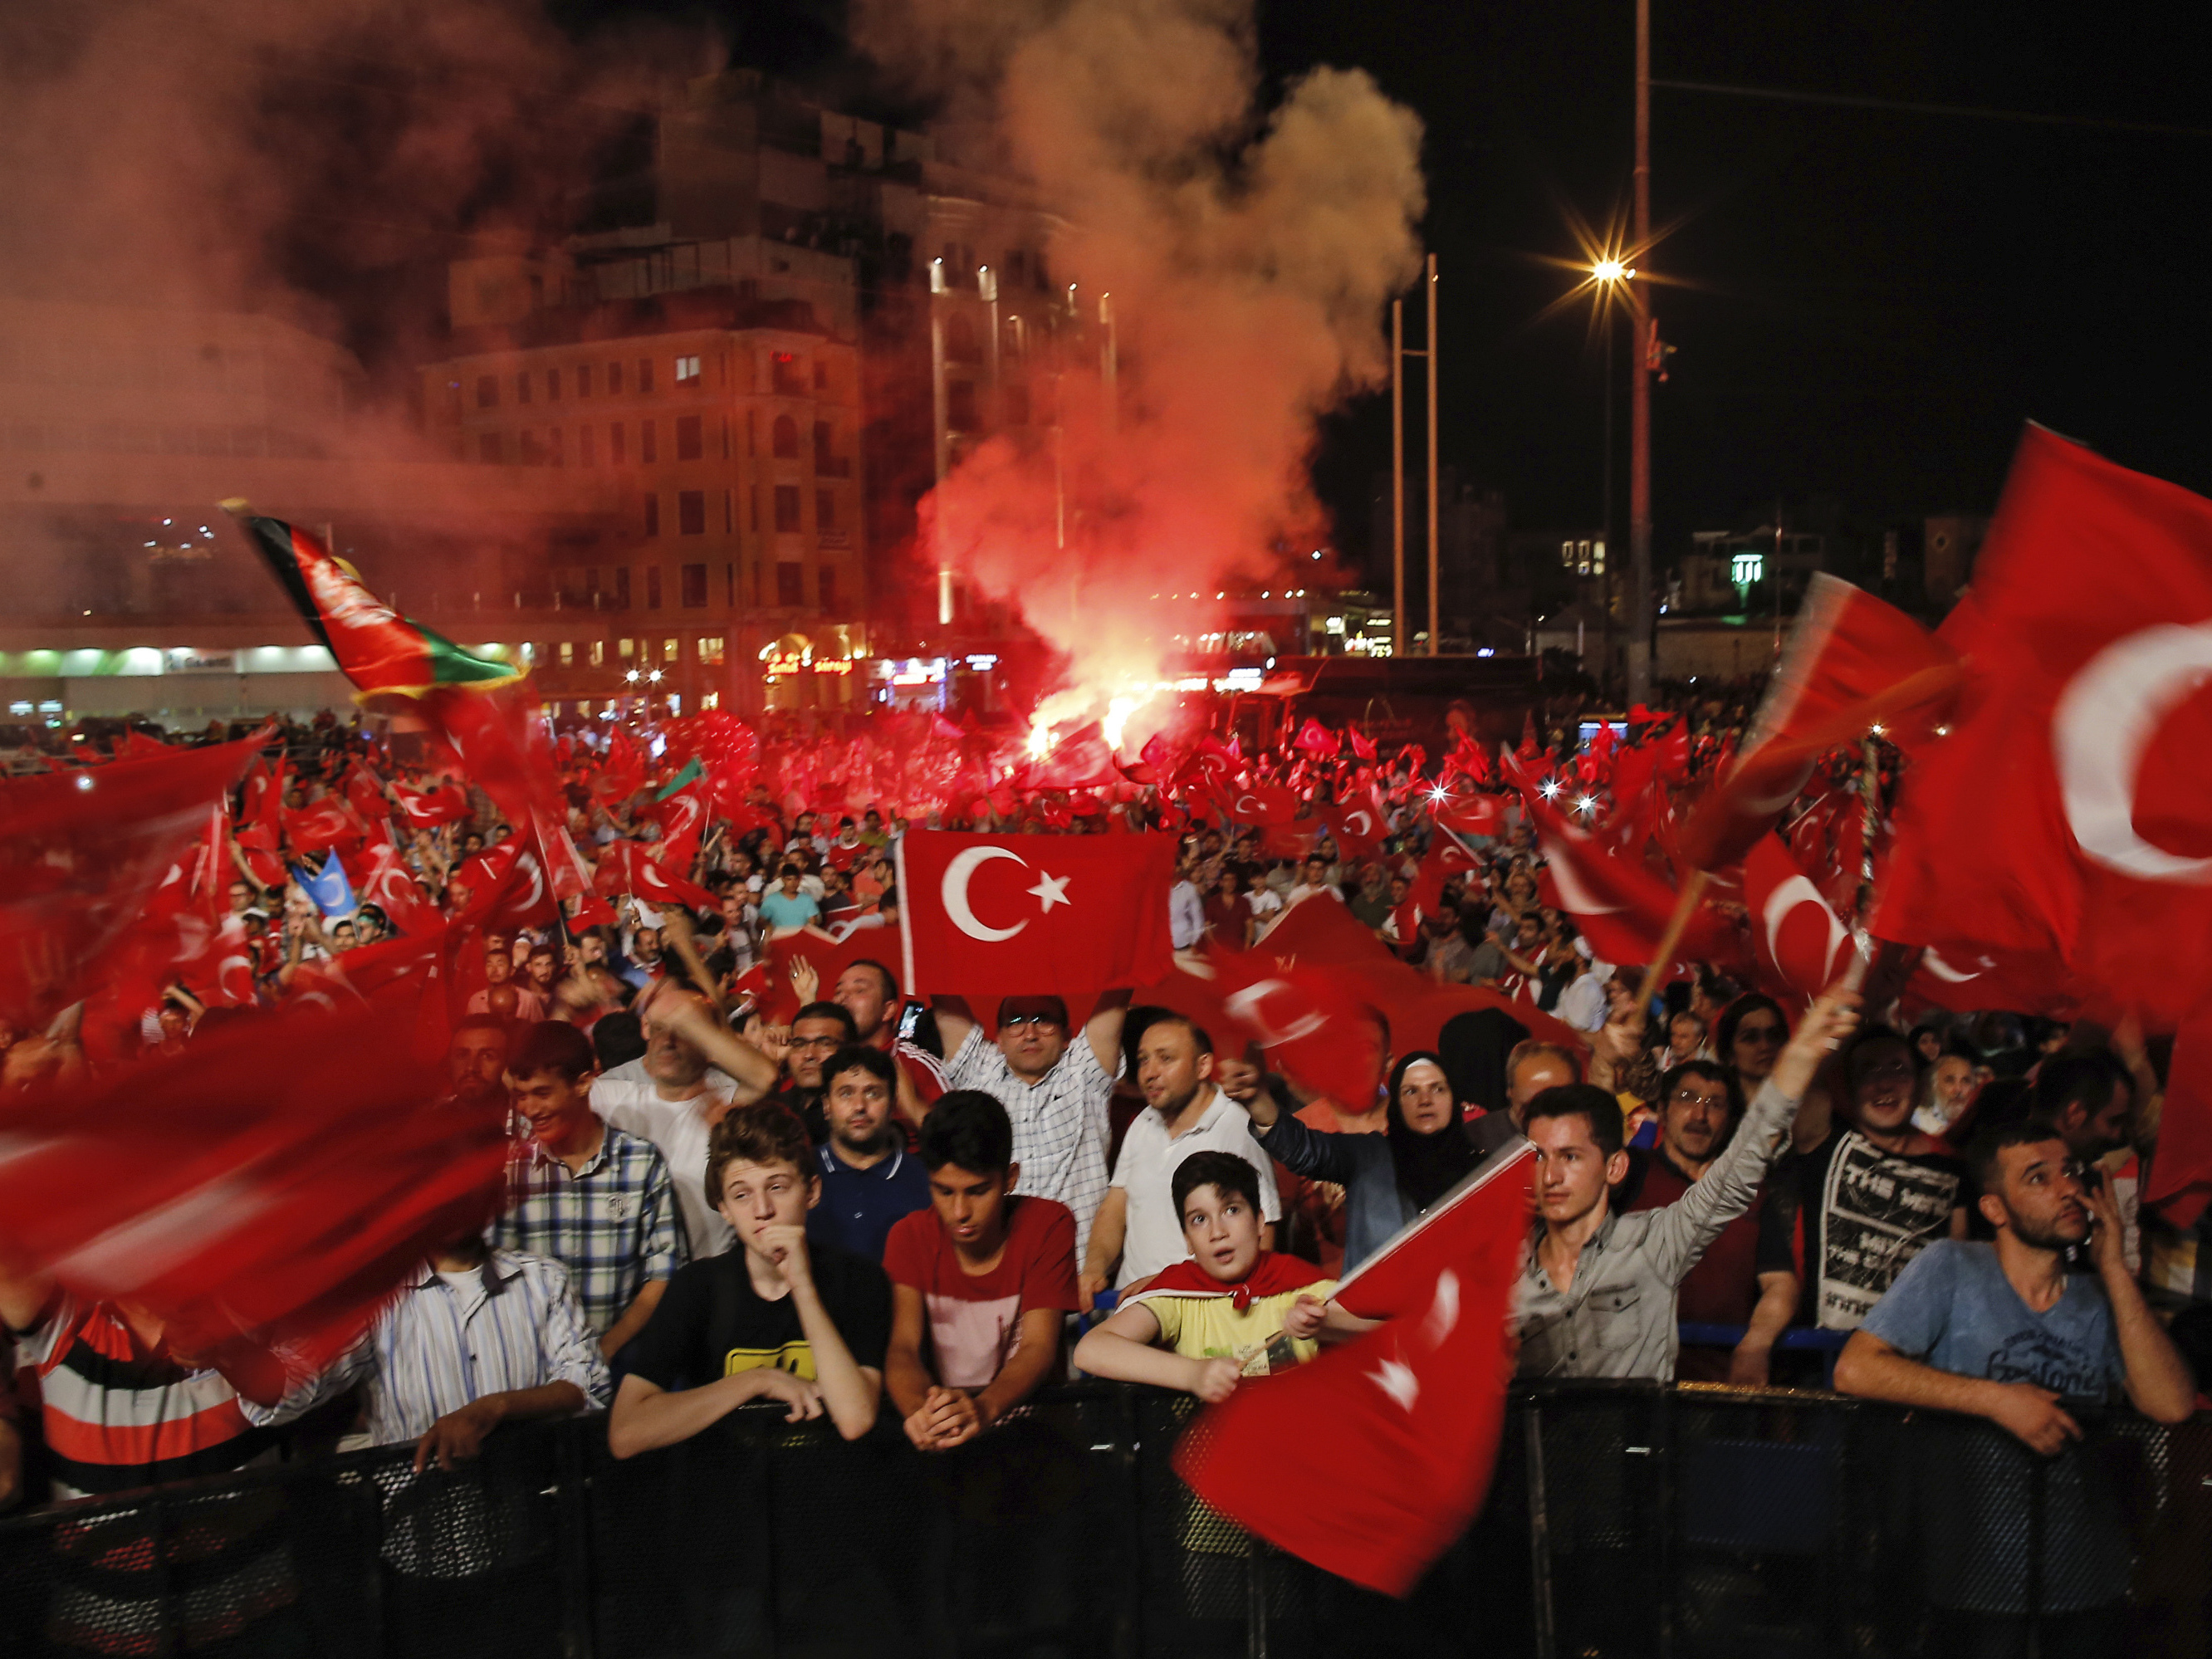 Turkey's Post-Coup-Attempt Purge Widens As Arrests And Firings Grow